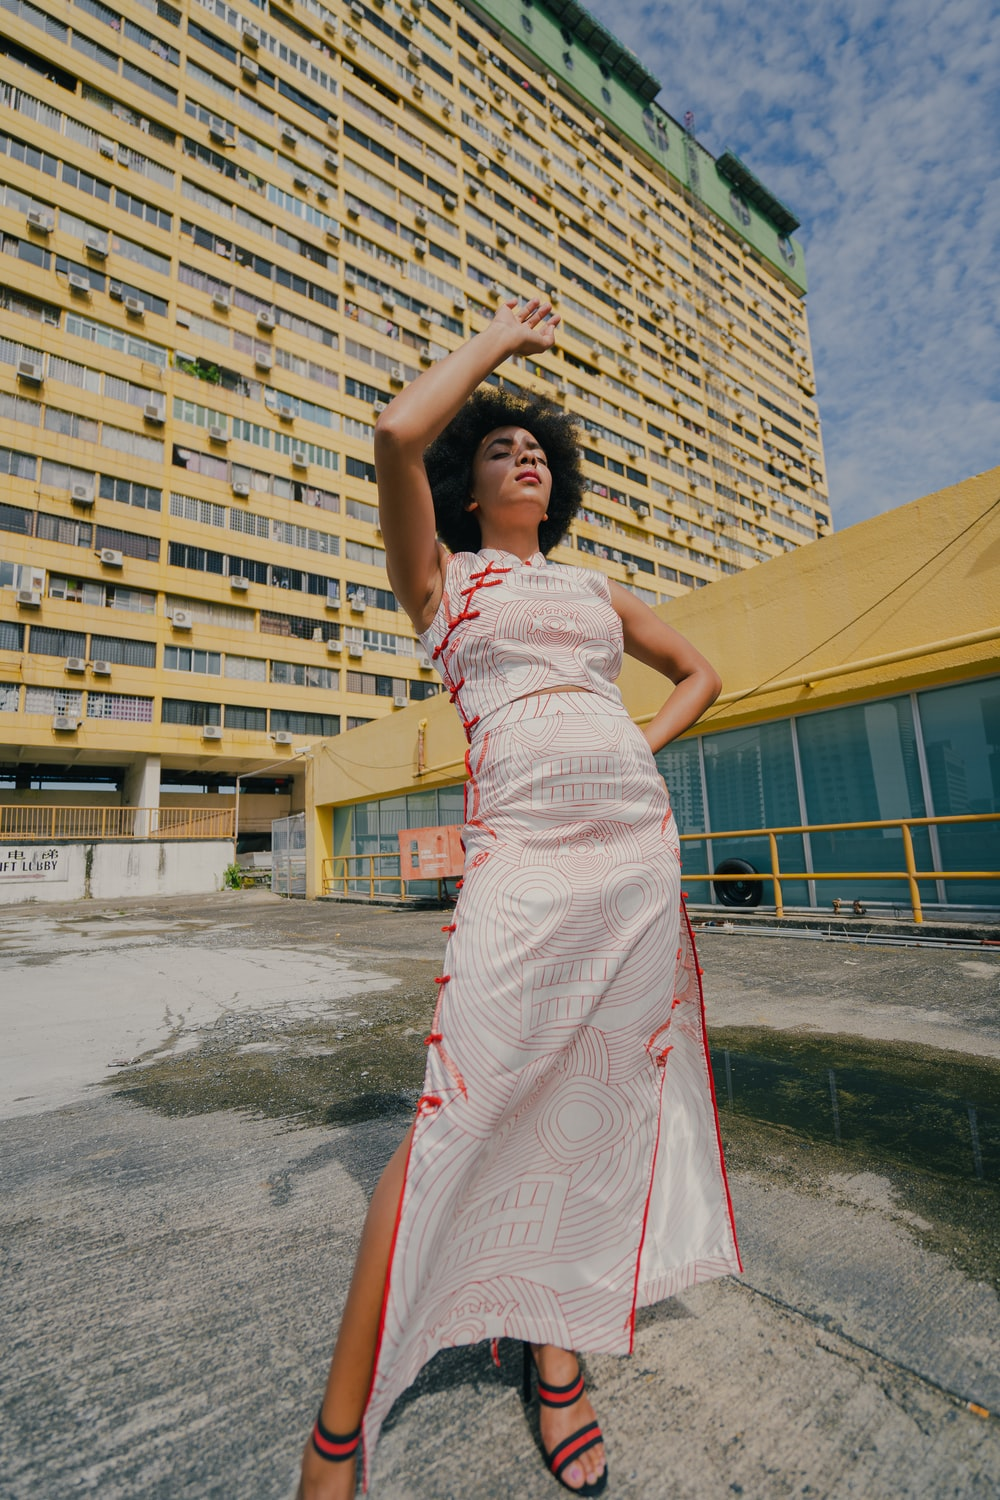 woman in white and red floral dress standing on gray concrete floor during daytime